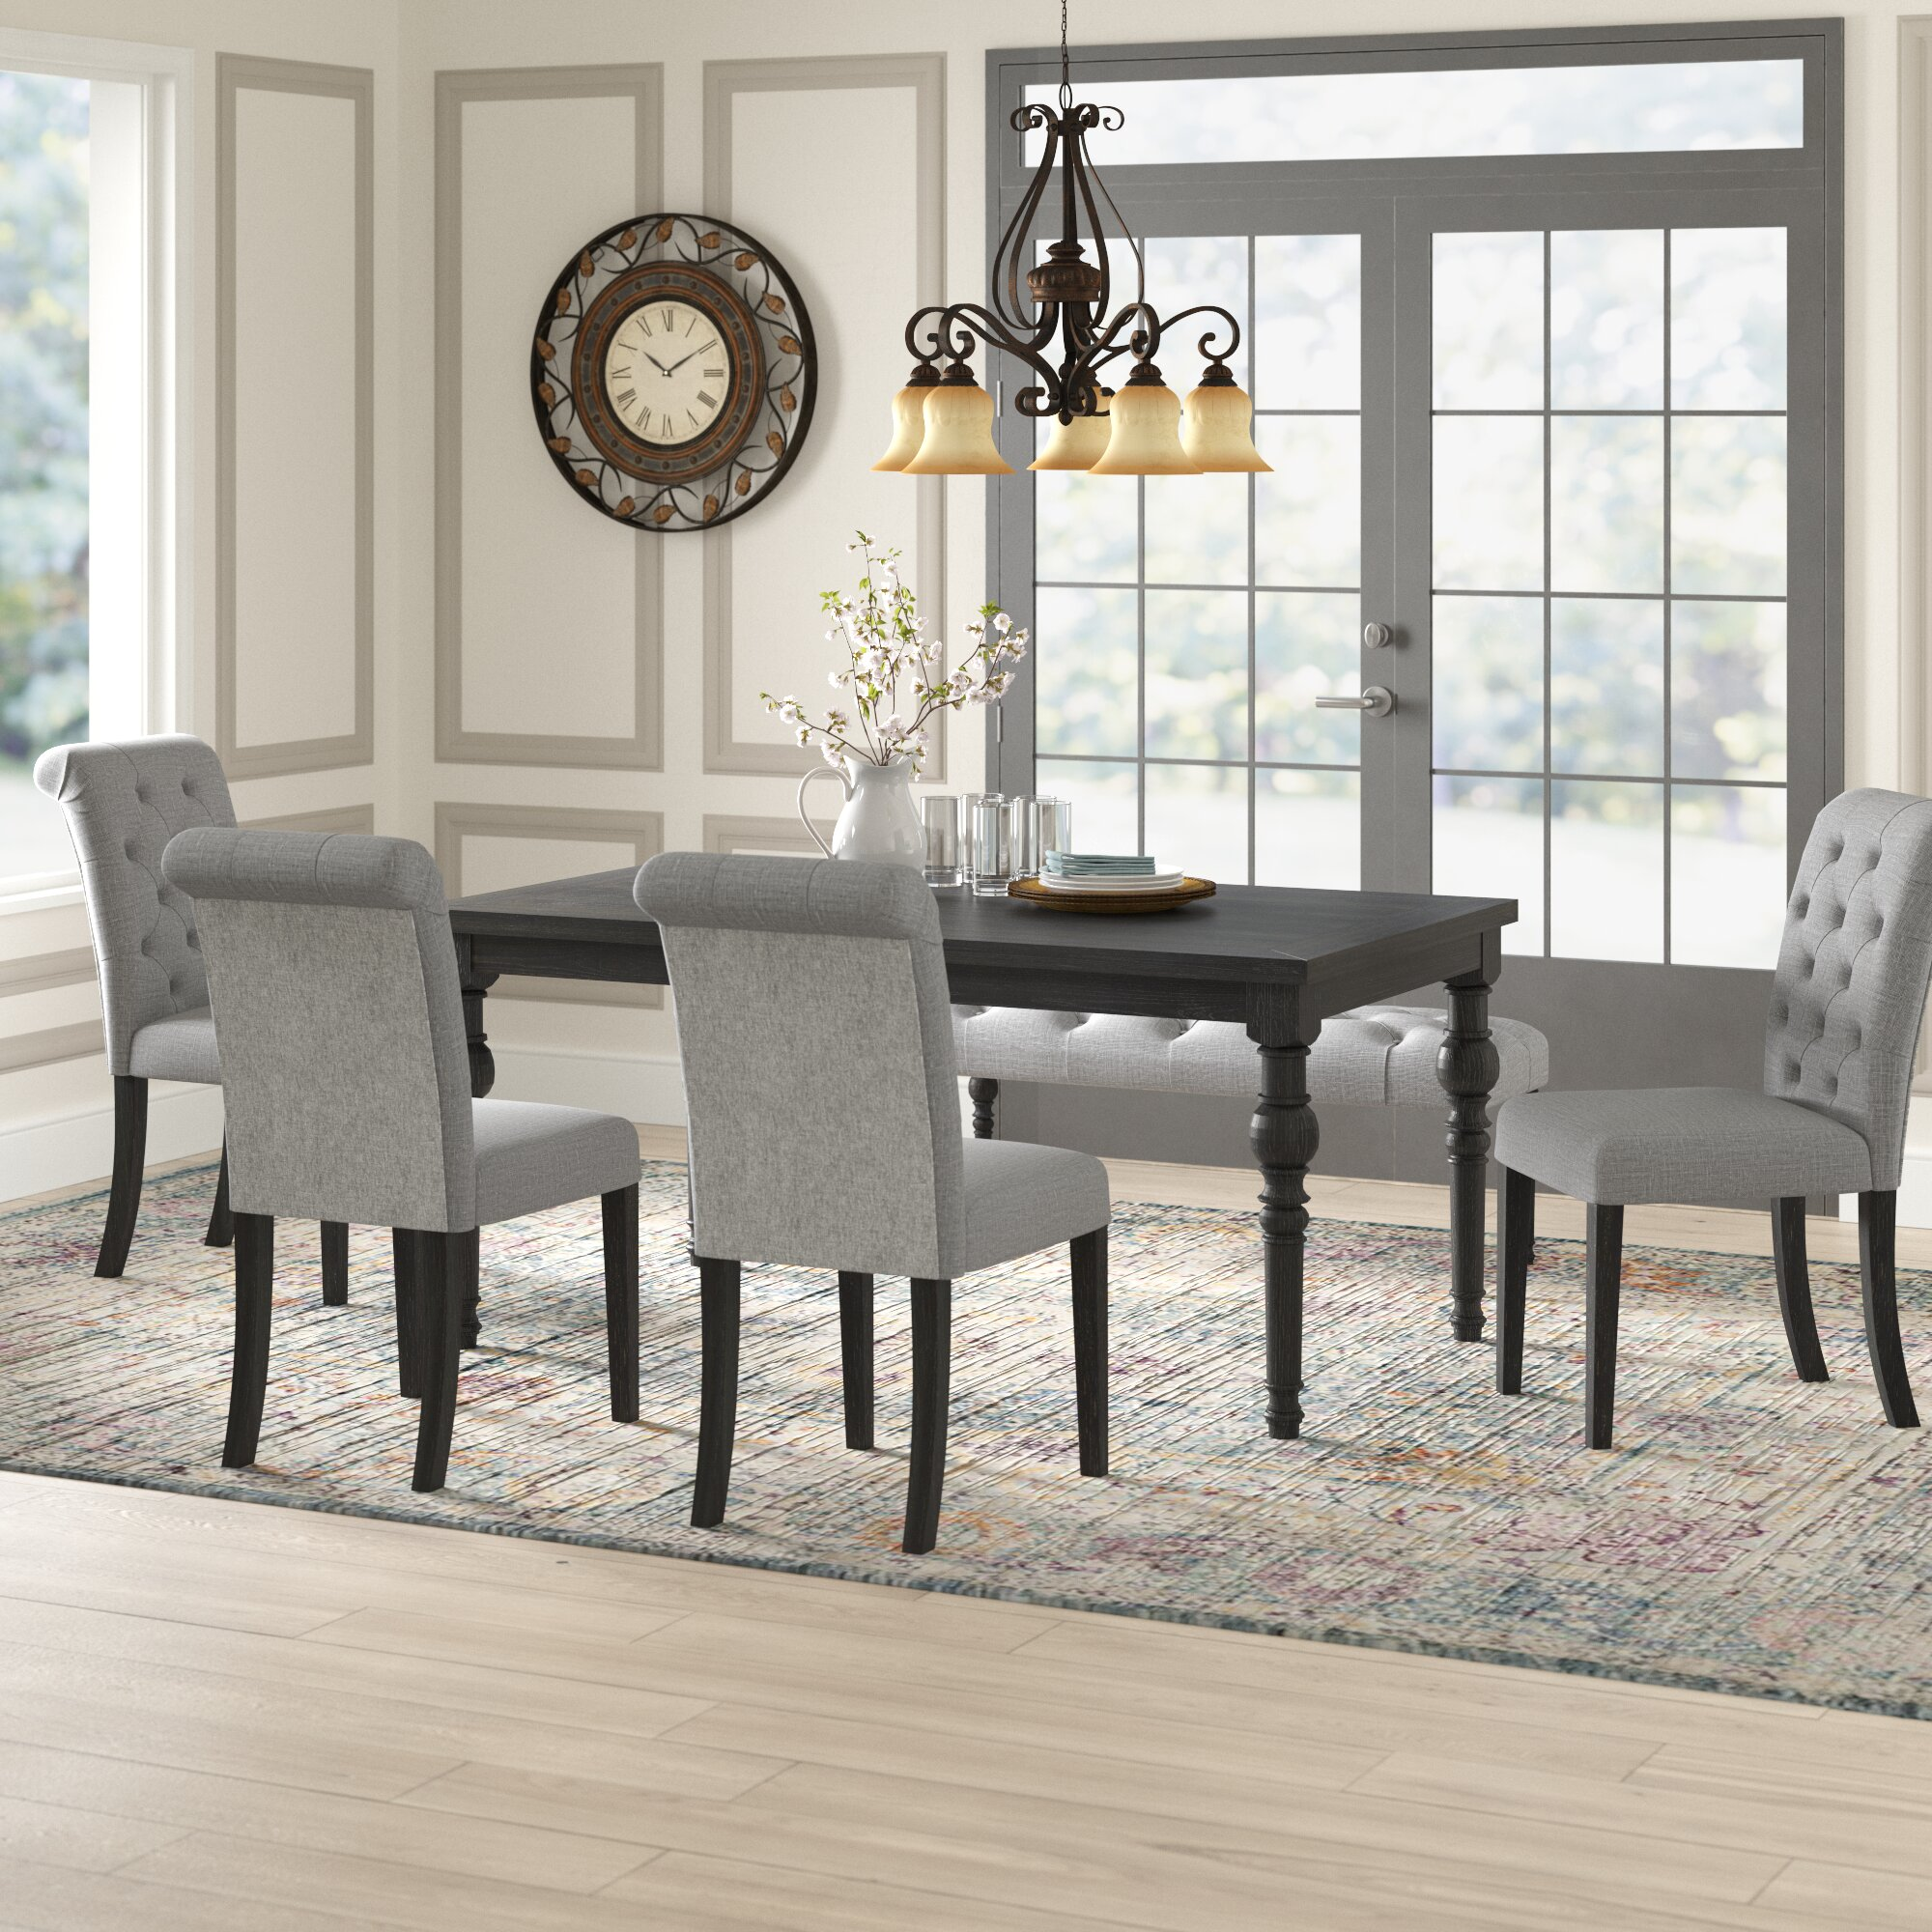 Black Kitchen Dining Room Sets You Ll Love In 2021 Wayfair